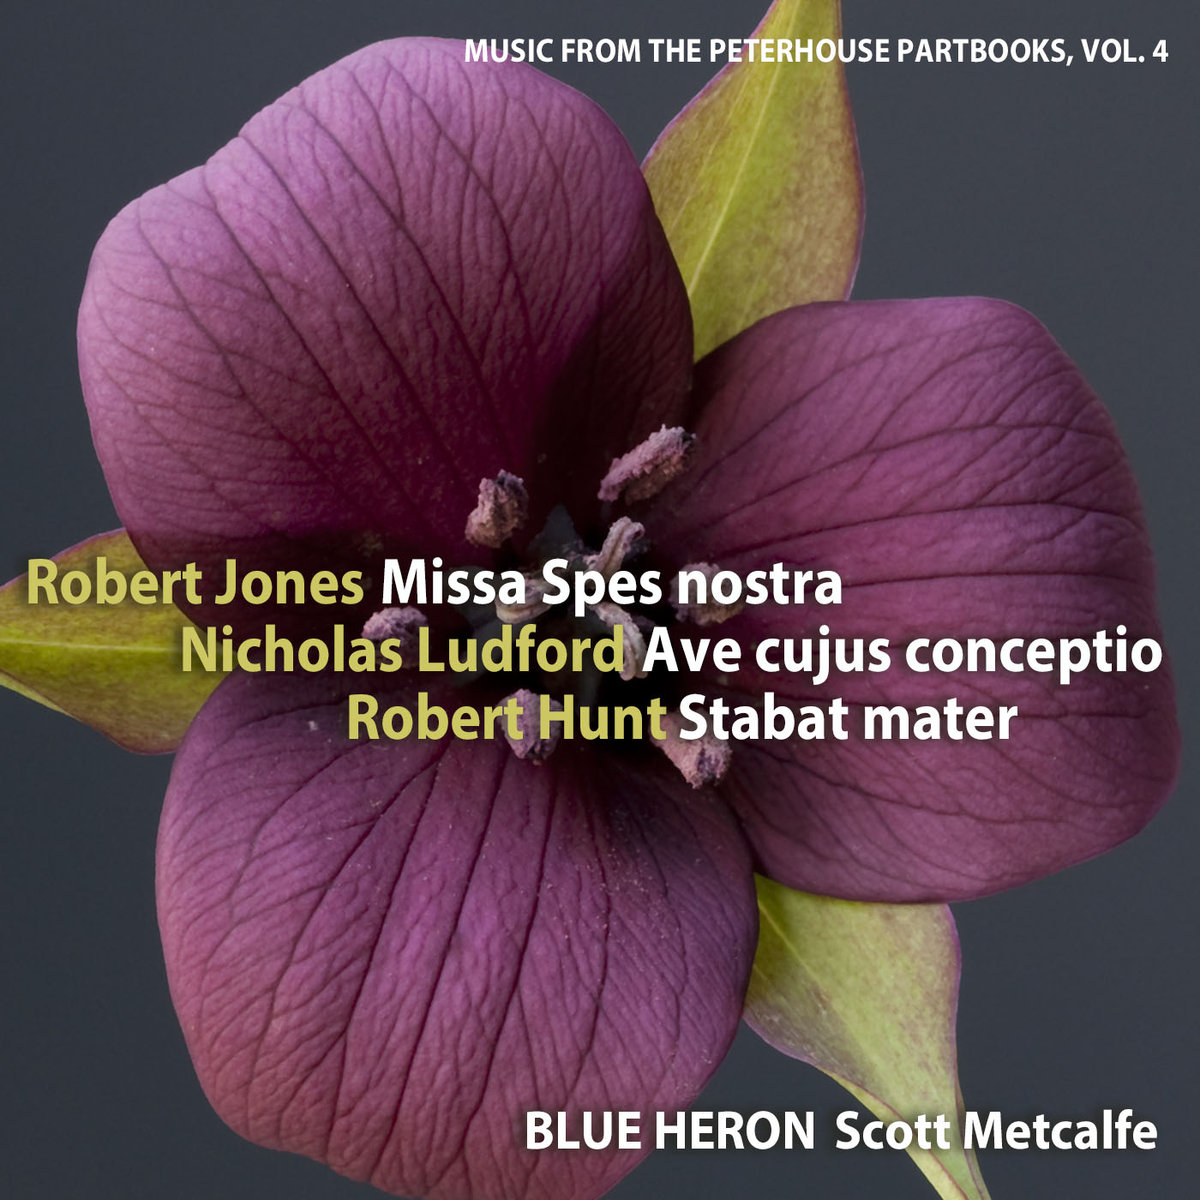 Blue Heron | Peterhouse Volume 4: